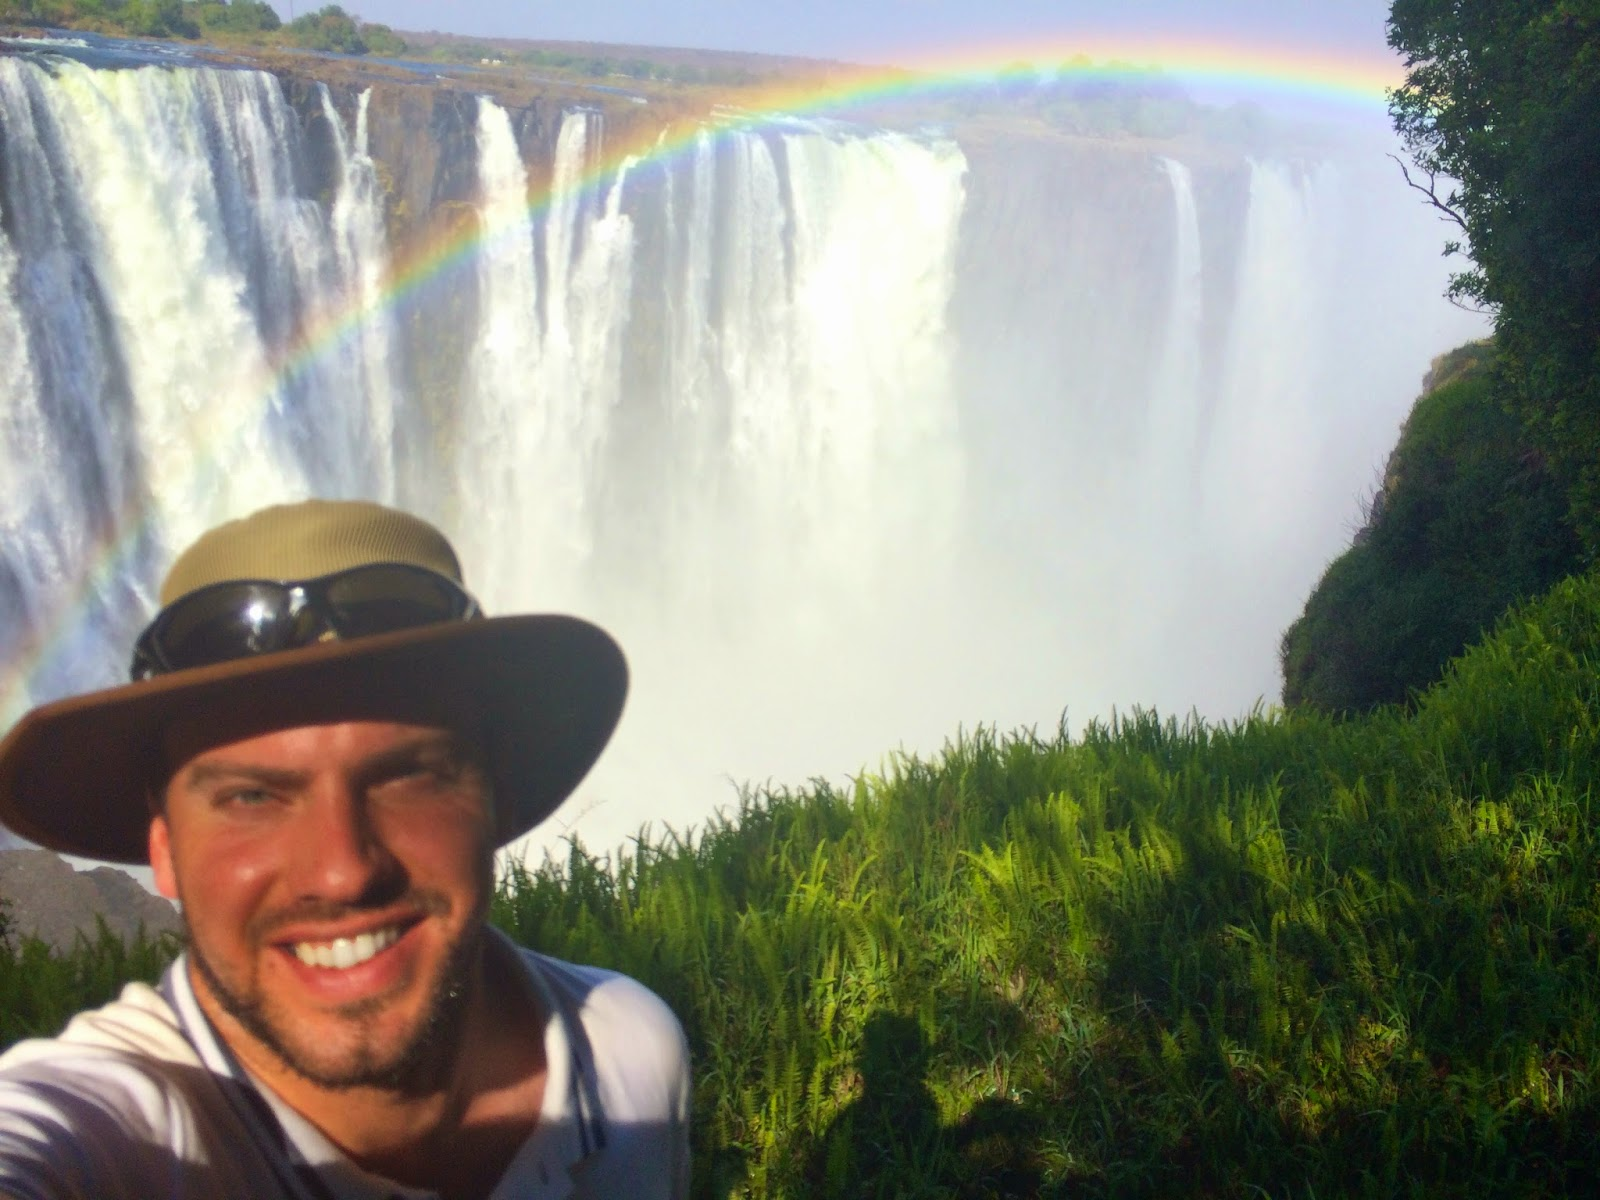 Simon at Victoria Falls, Zimbabwe